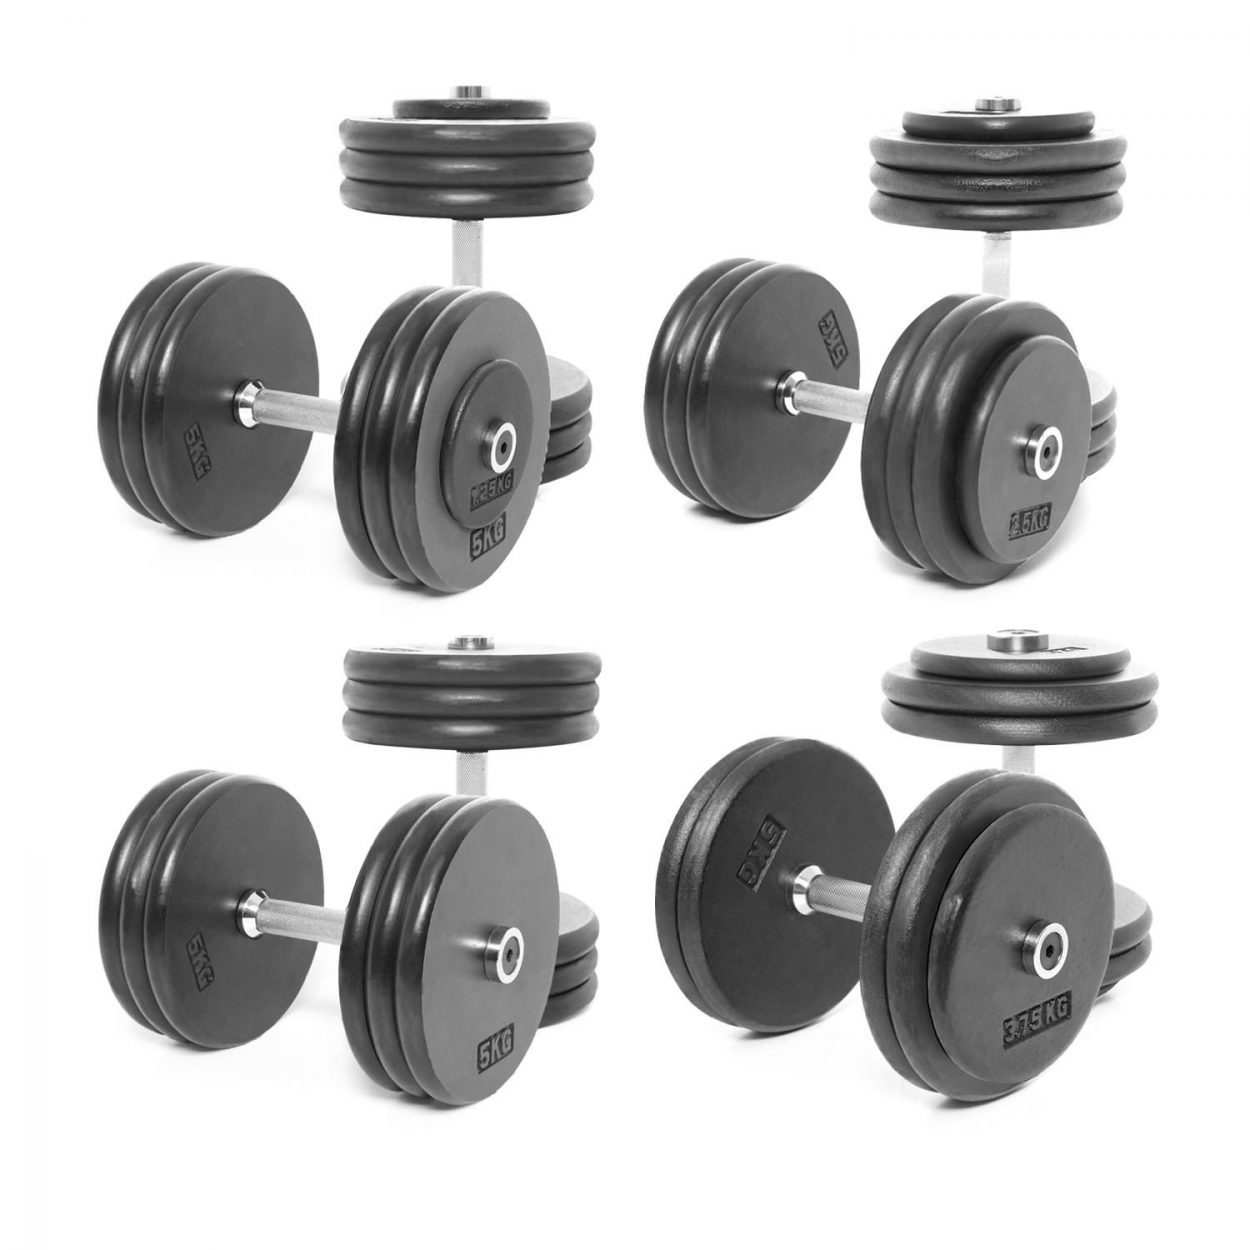 Body Power Pro-style Dumbbells Weight Set B: 27.5-35kg (4 Pairs)